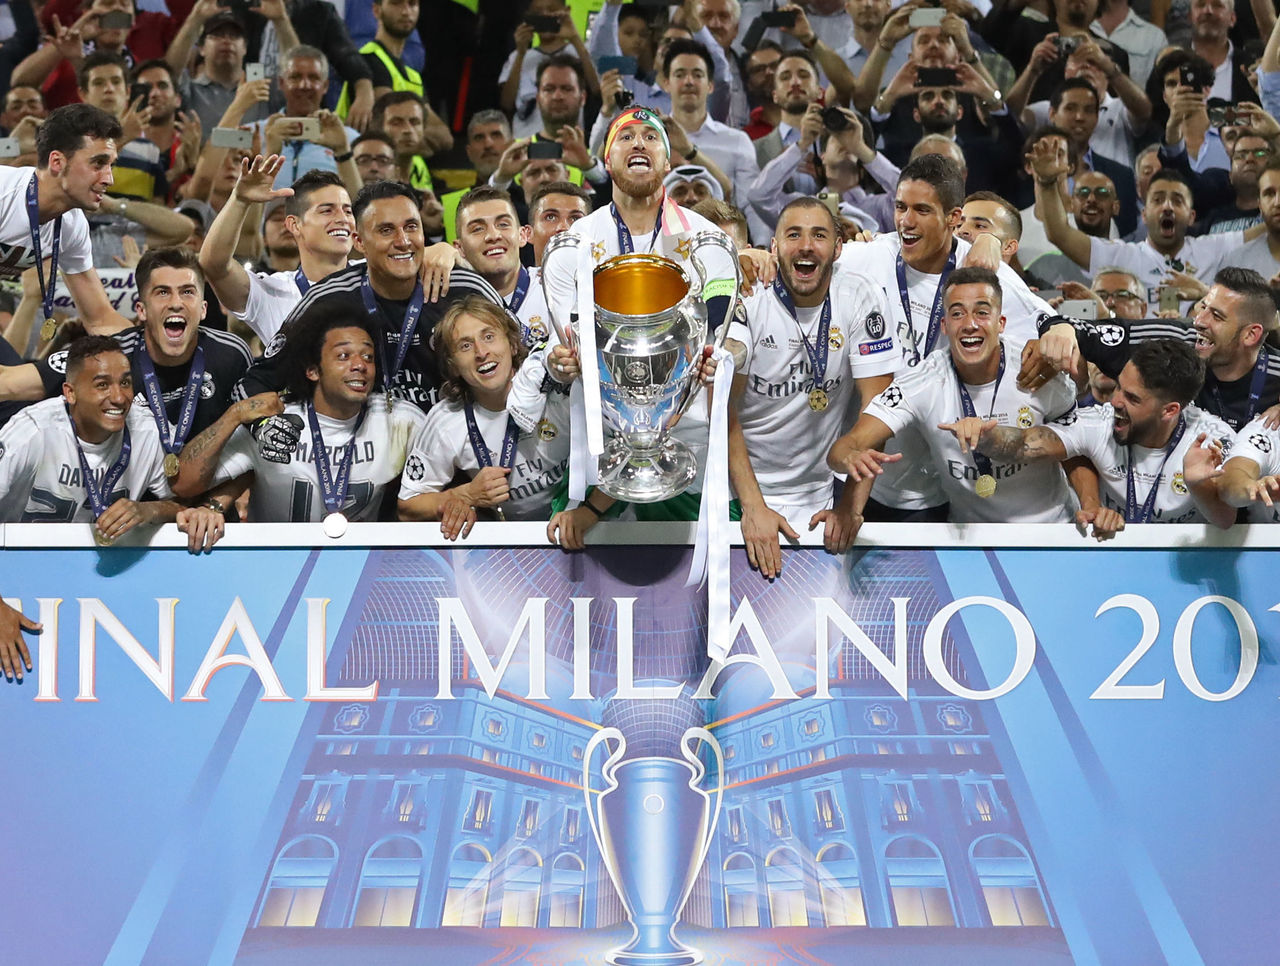 Cropped 2016 05 28t225240z 1 mt1aci14413849 rtrmadp 3 soccer italy